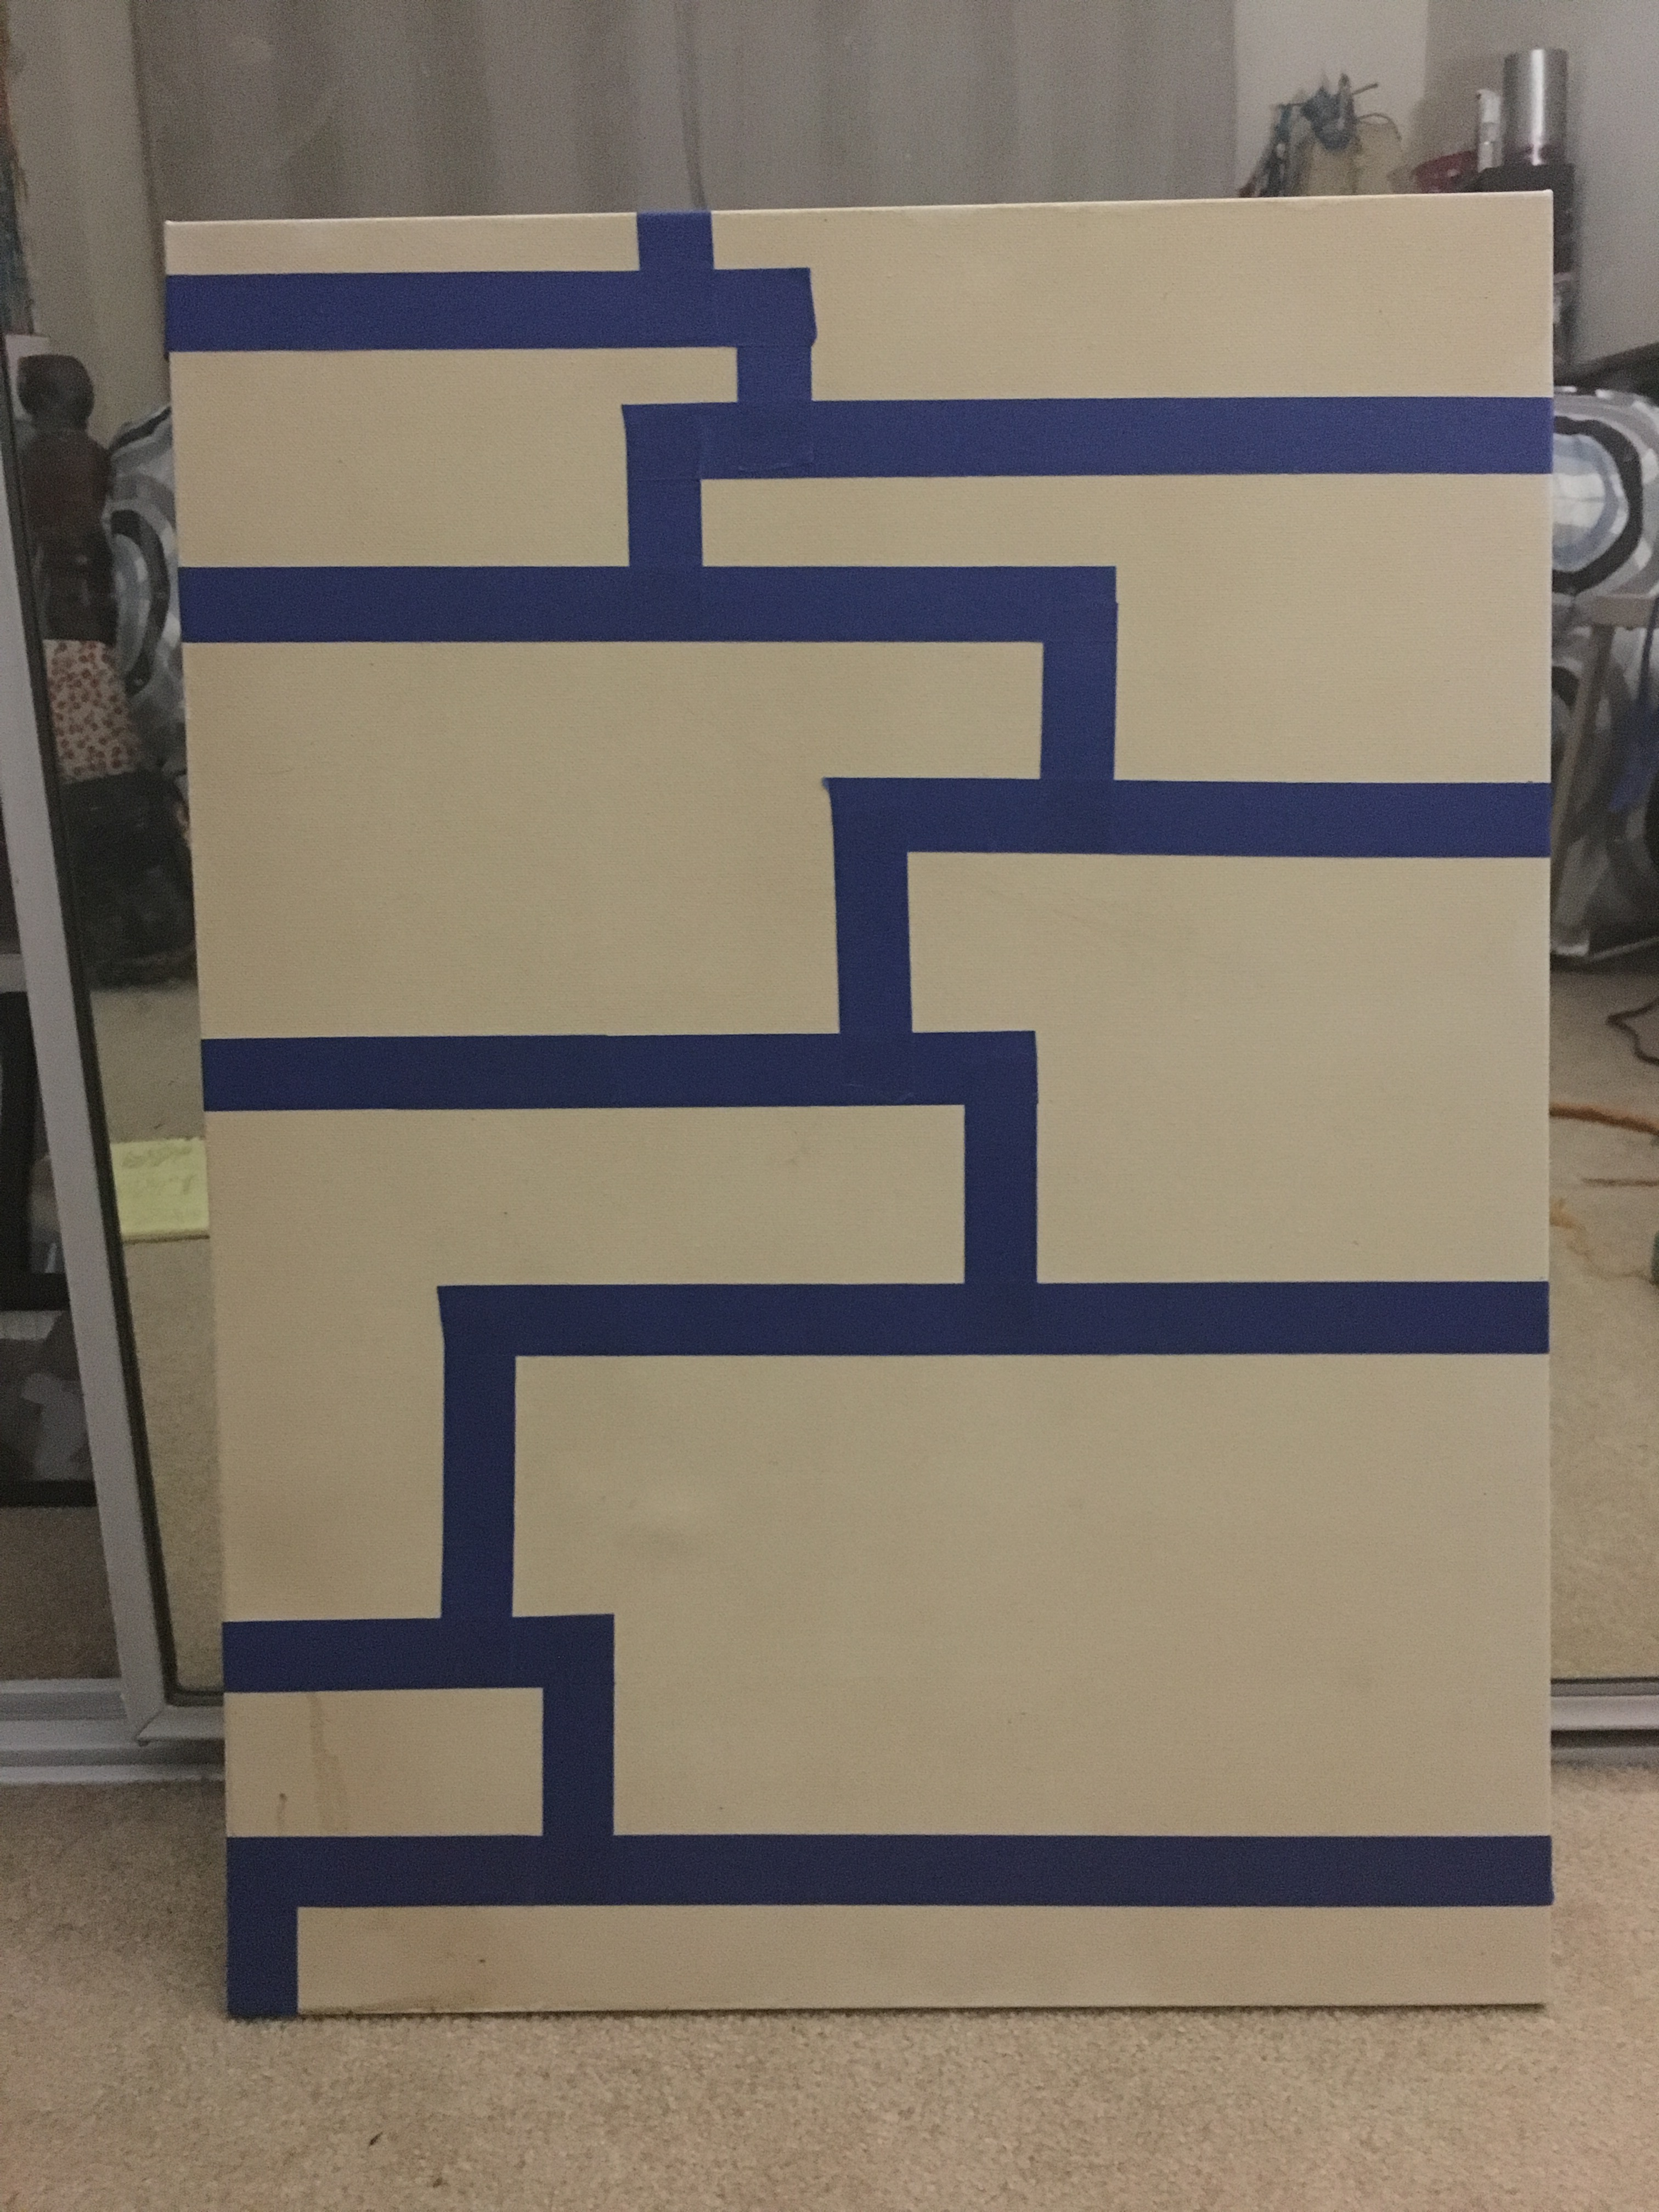 taped out sections for painting to be